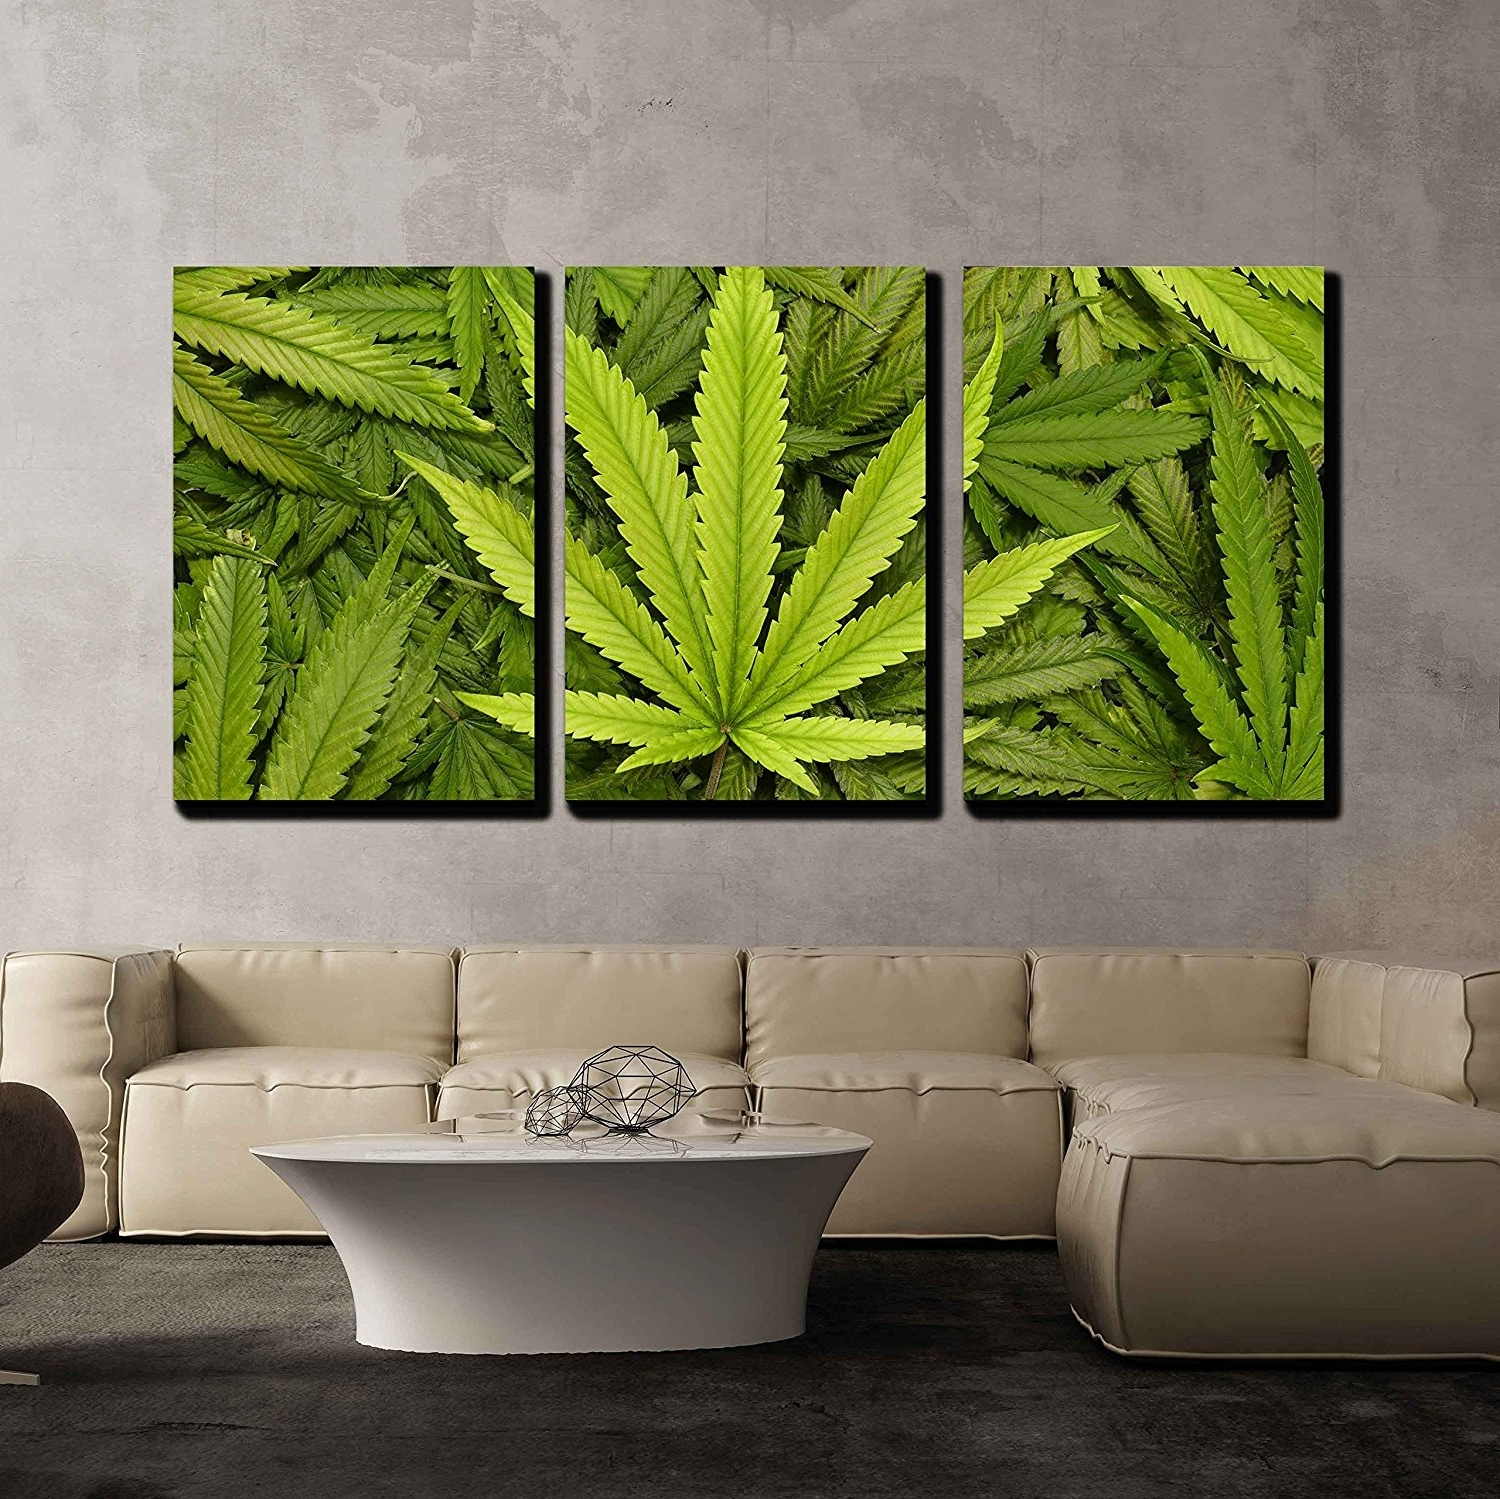 Wall26 – Art Prints – Framed Art – Canvas Prints – Greeting Inside Well Known Leaves Canvas Wall Art (View 14 of 15)